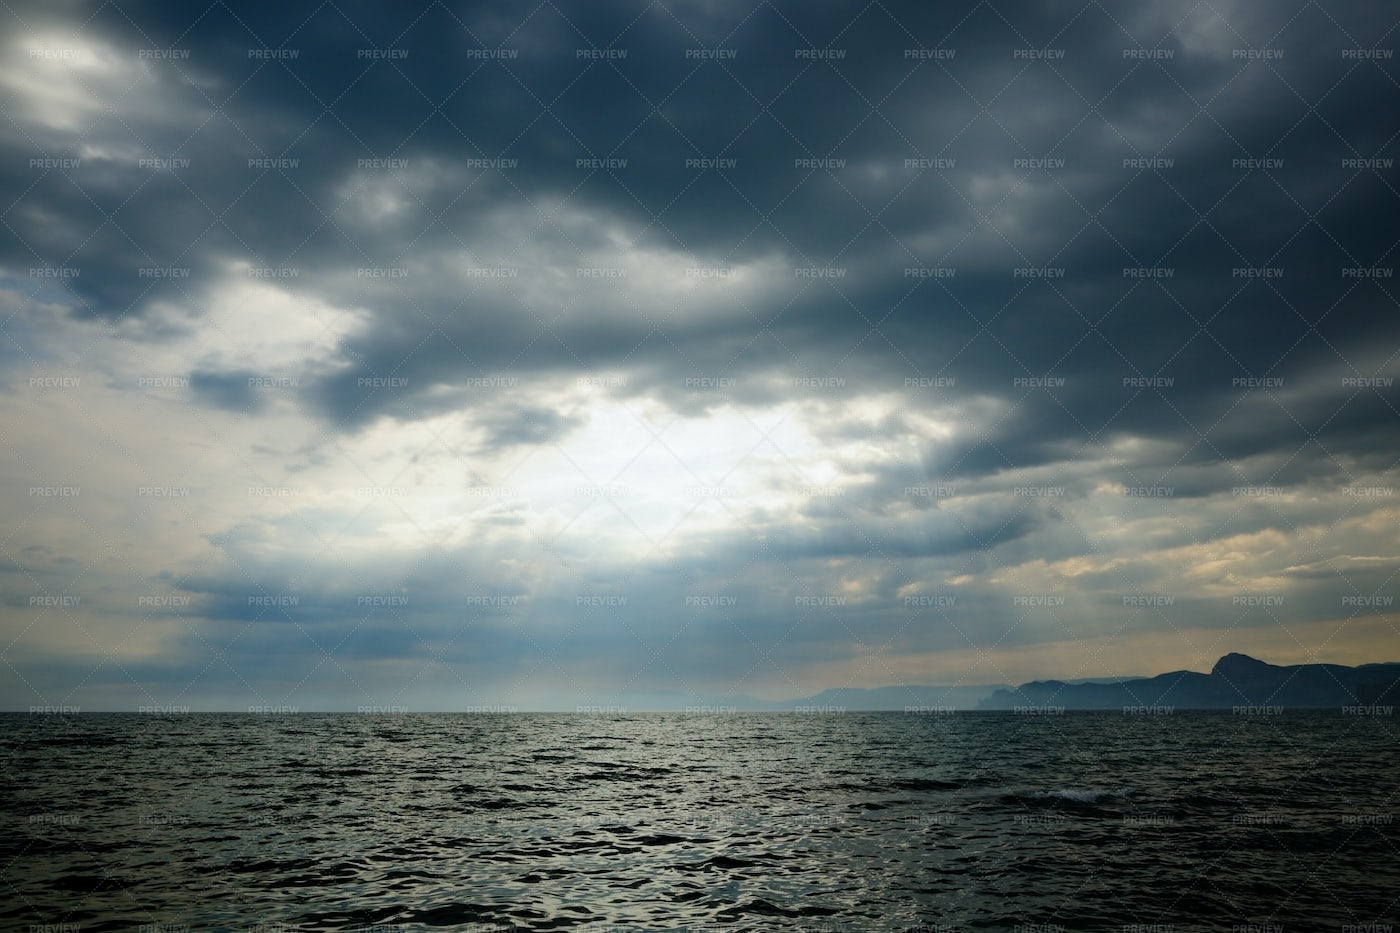 Stormy Sea With Clouds: Stock Photos